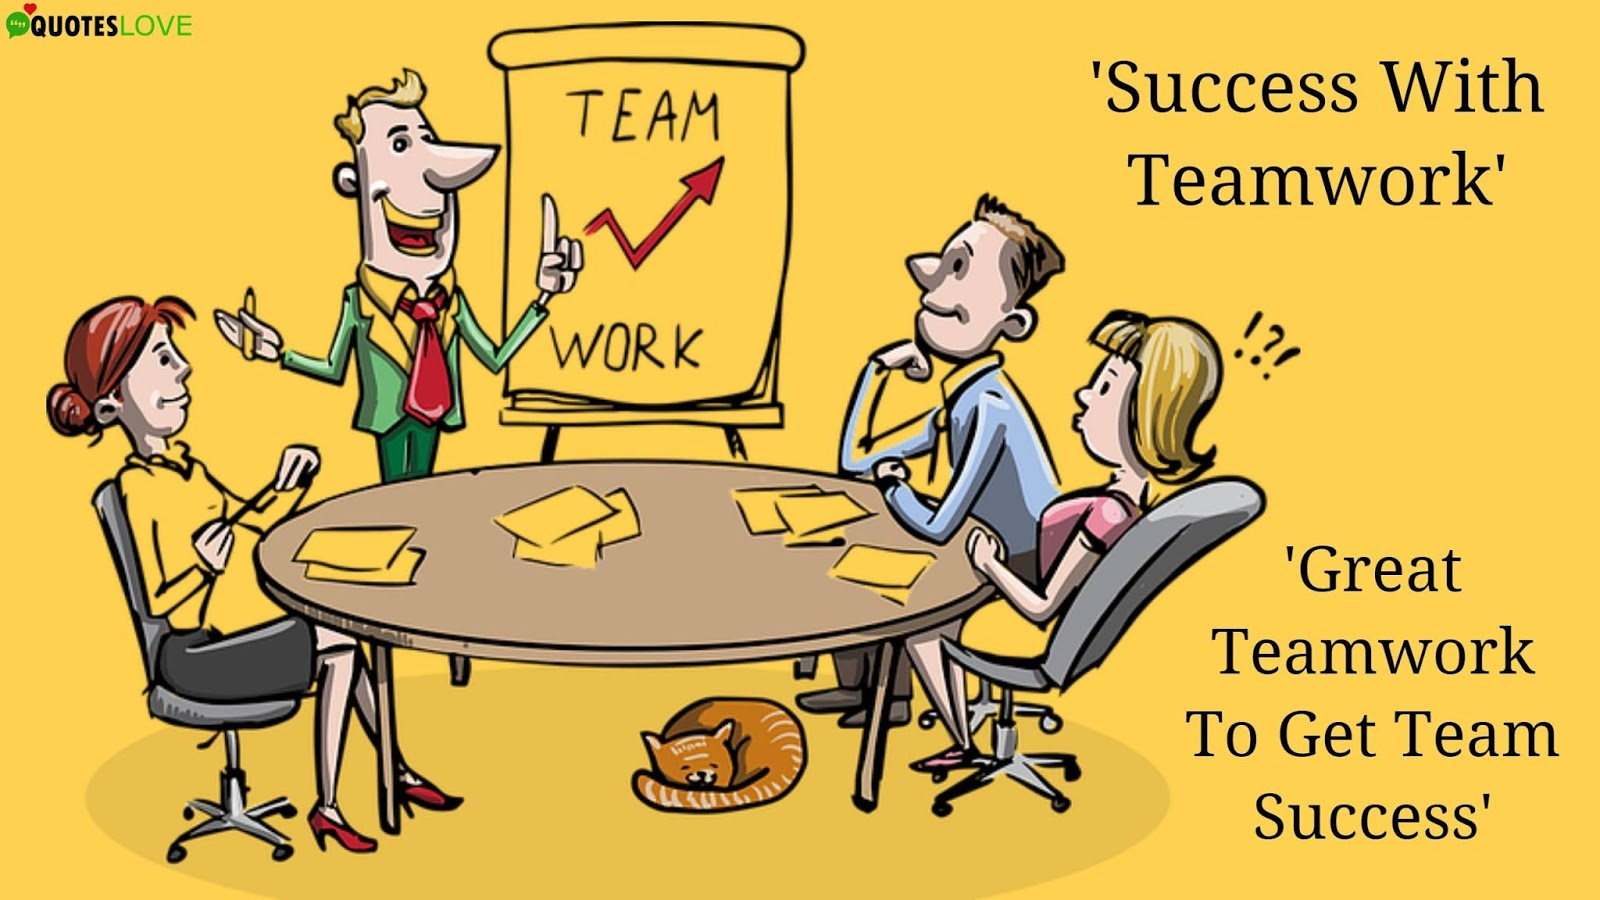 21+ (Best) Team Success Quotes To Inspire Great Teamwork